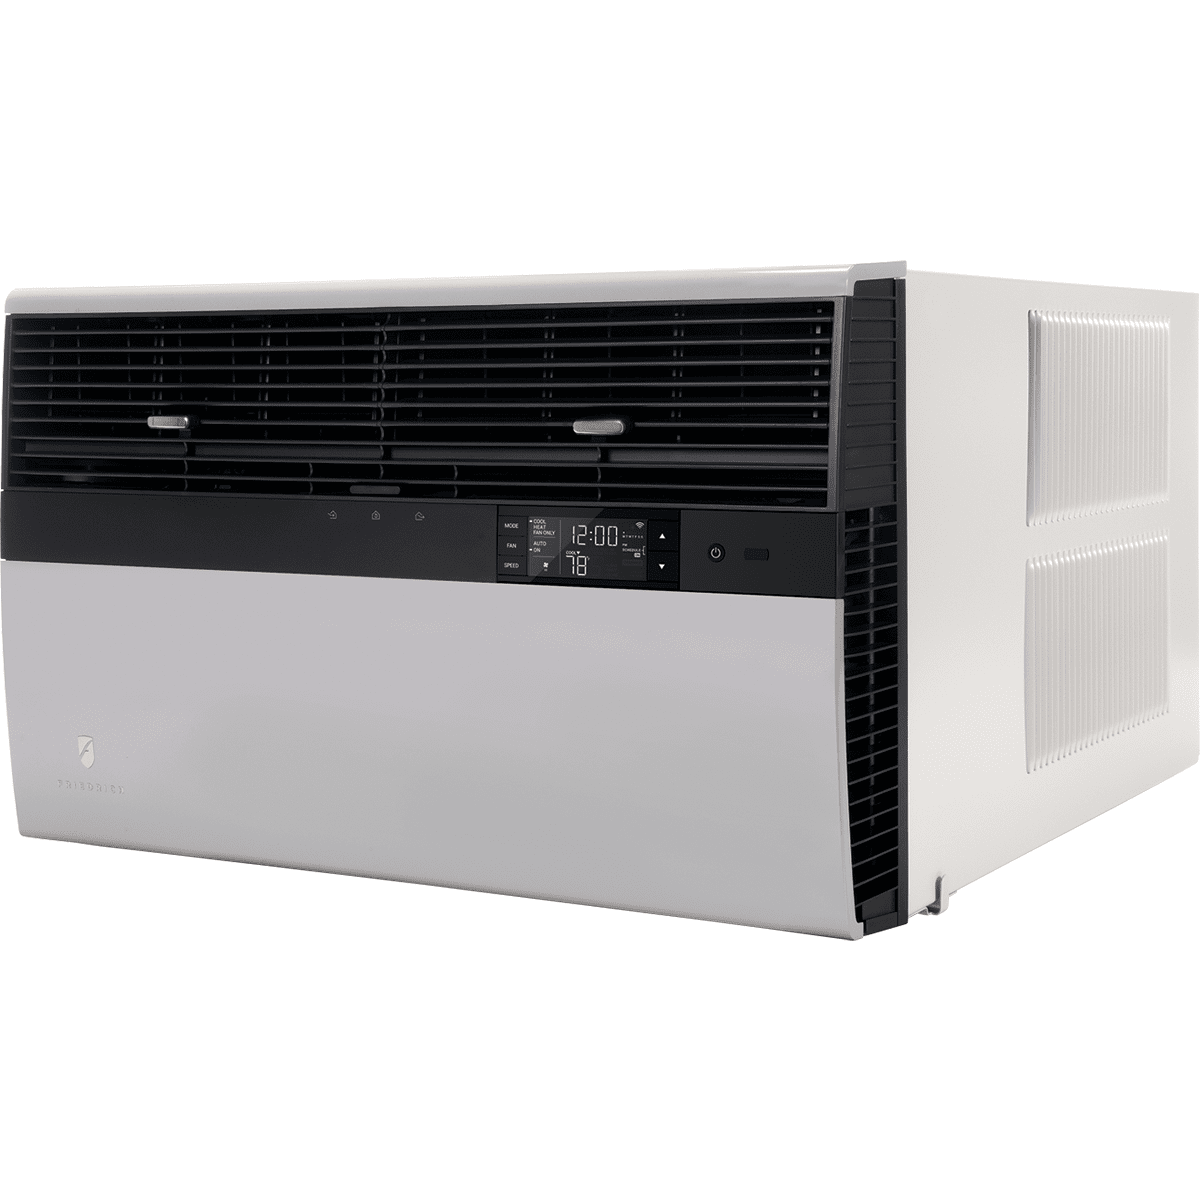 Friedrich Kuhl 24,000 BTU Commercial Window Air Conditioner